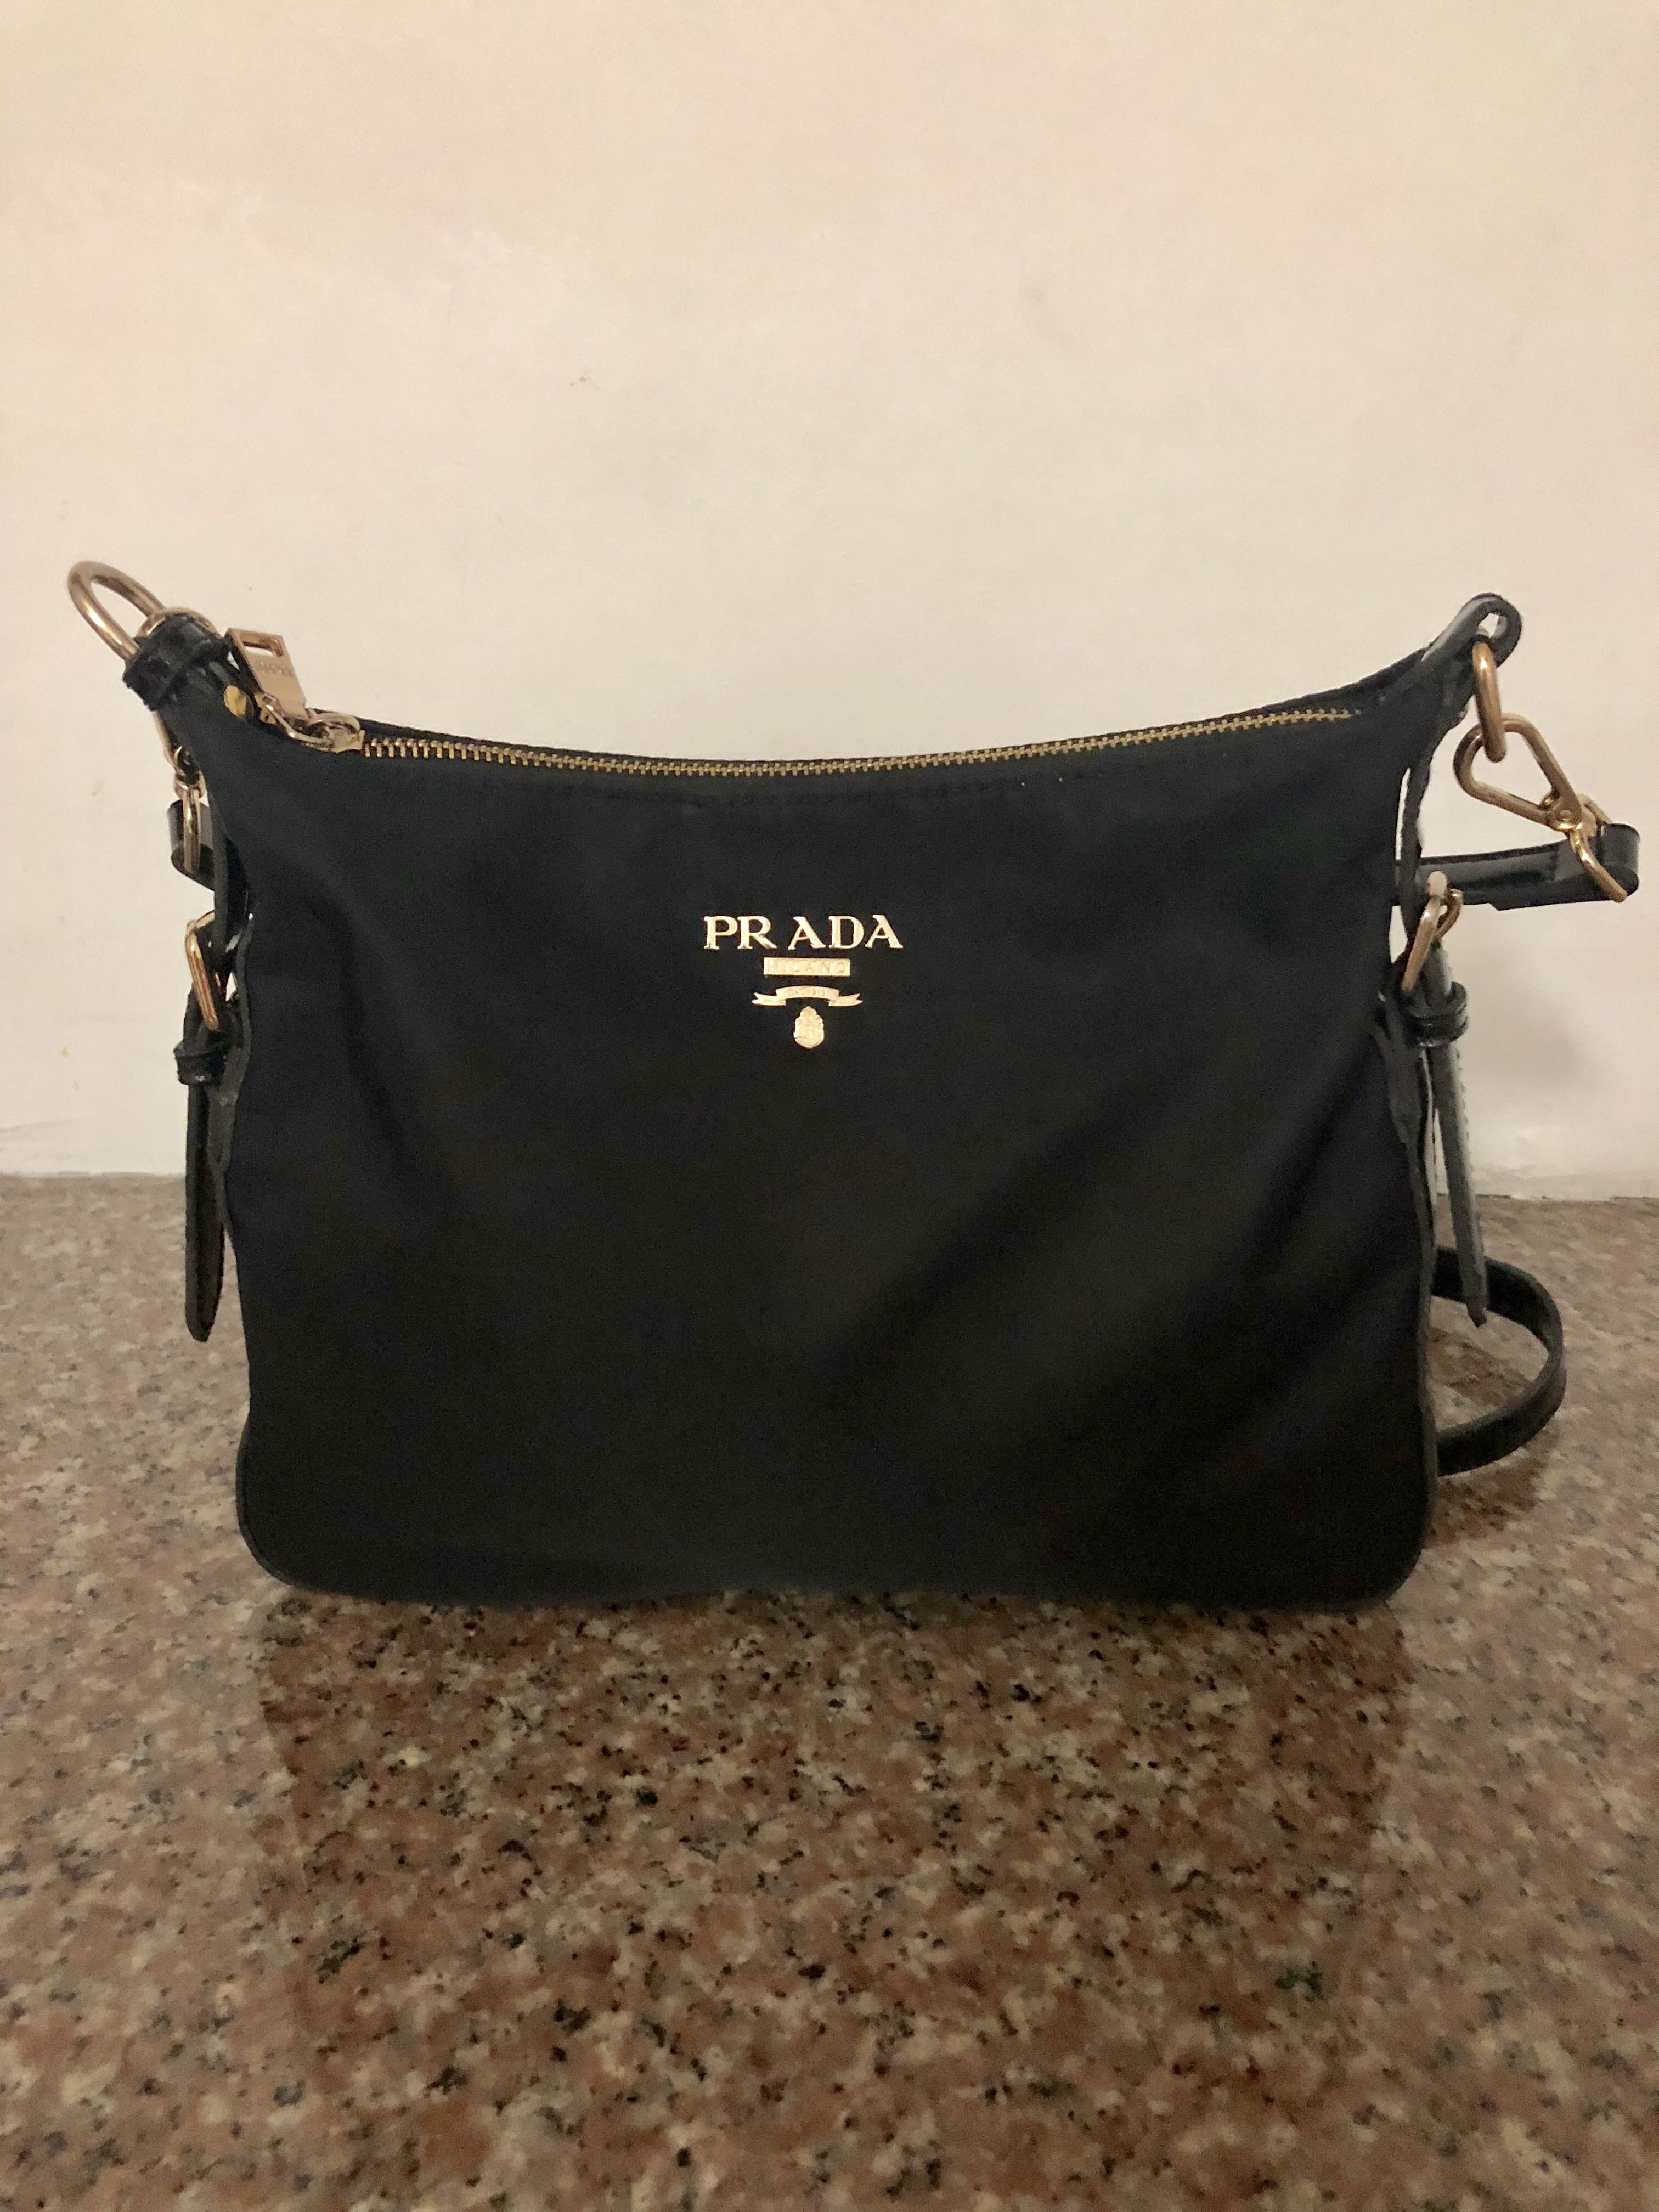 3256911e270f ... where to buy prada sling bag replica only womens fashion bags wallets  on carousell 0a112 9cb40